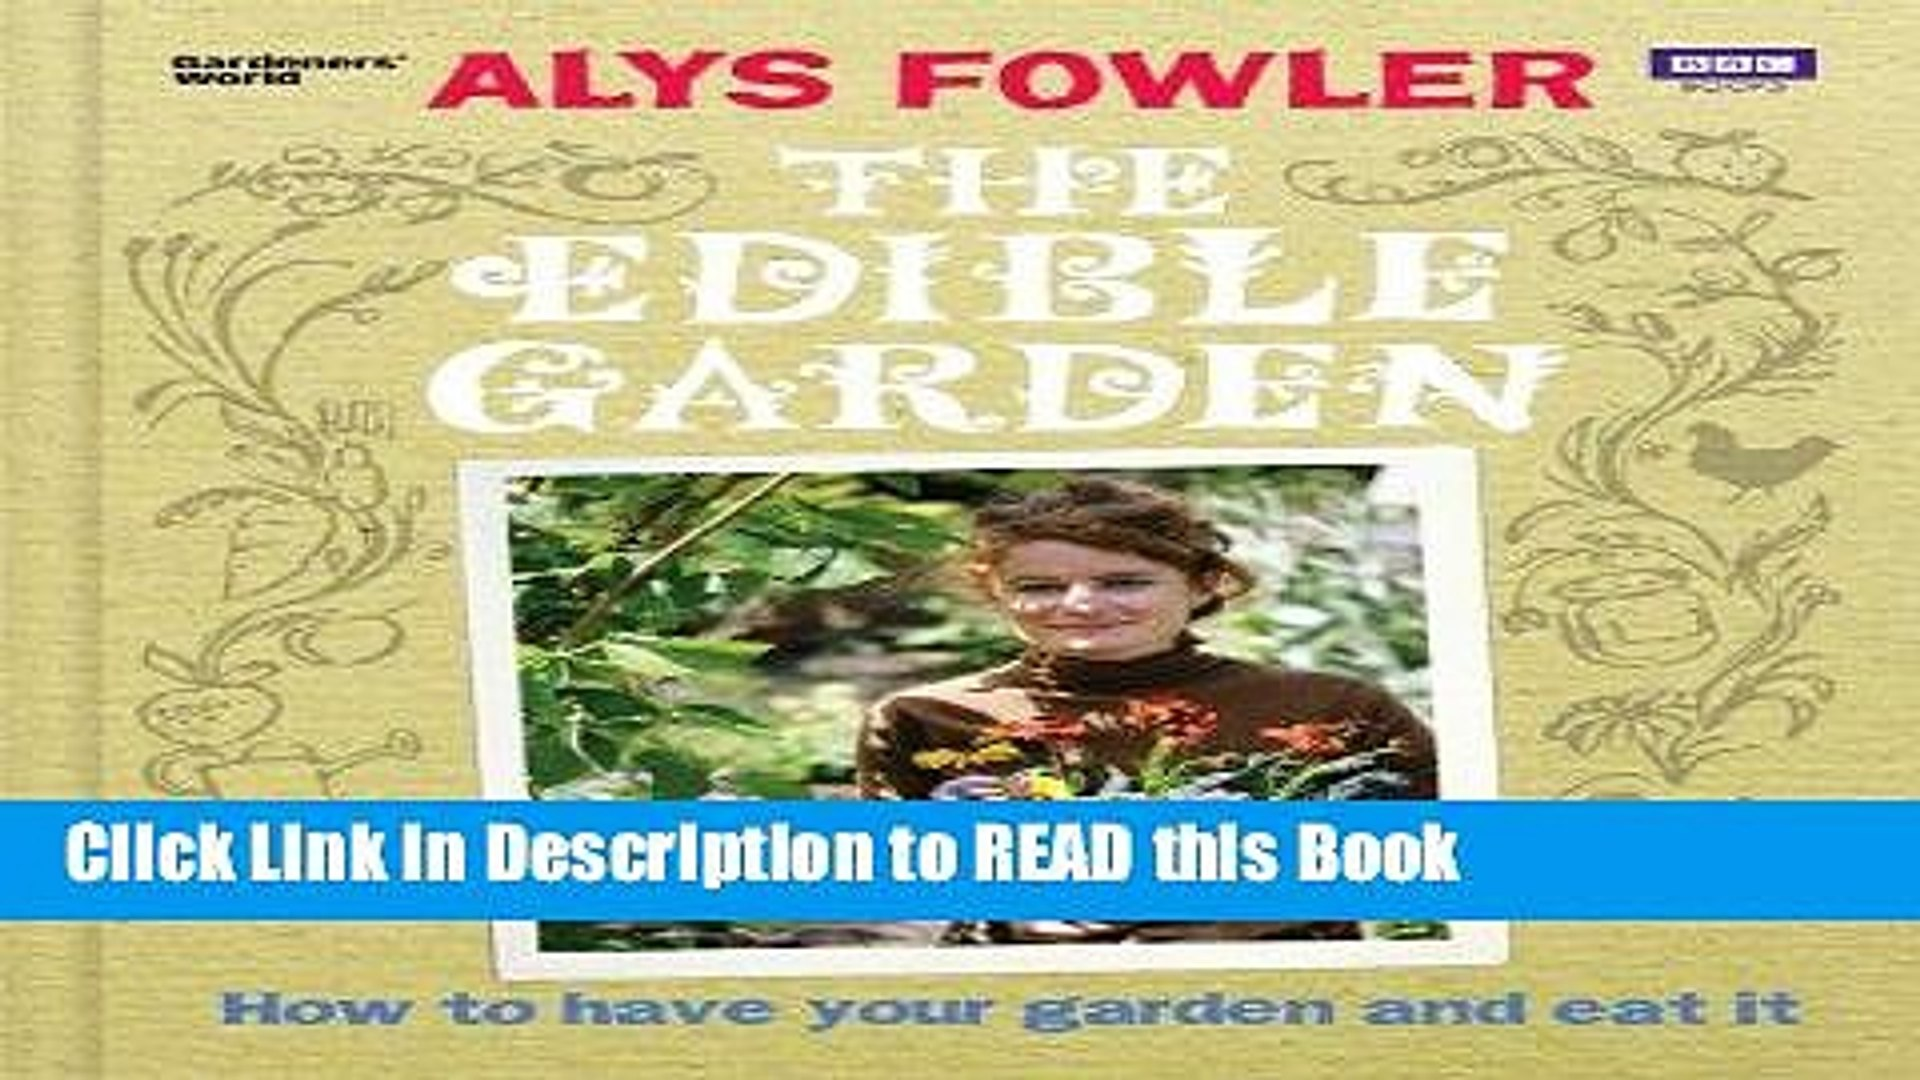 Read Book The Edible Garden: How to Have Your Garden and Eat It Full eBook